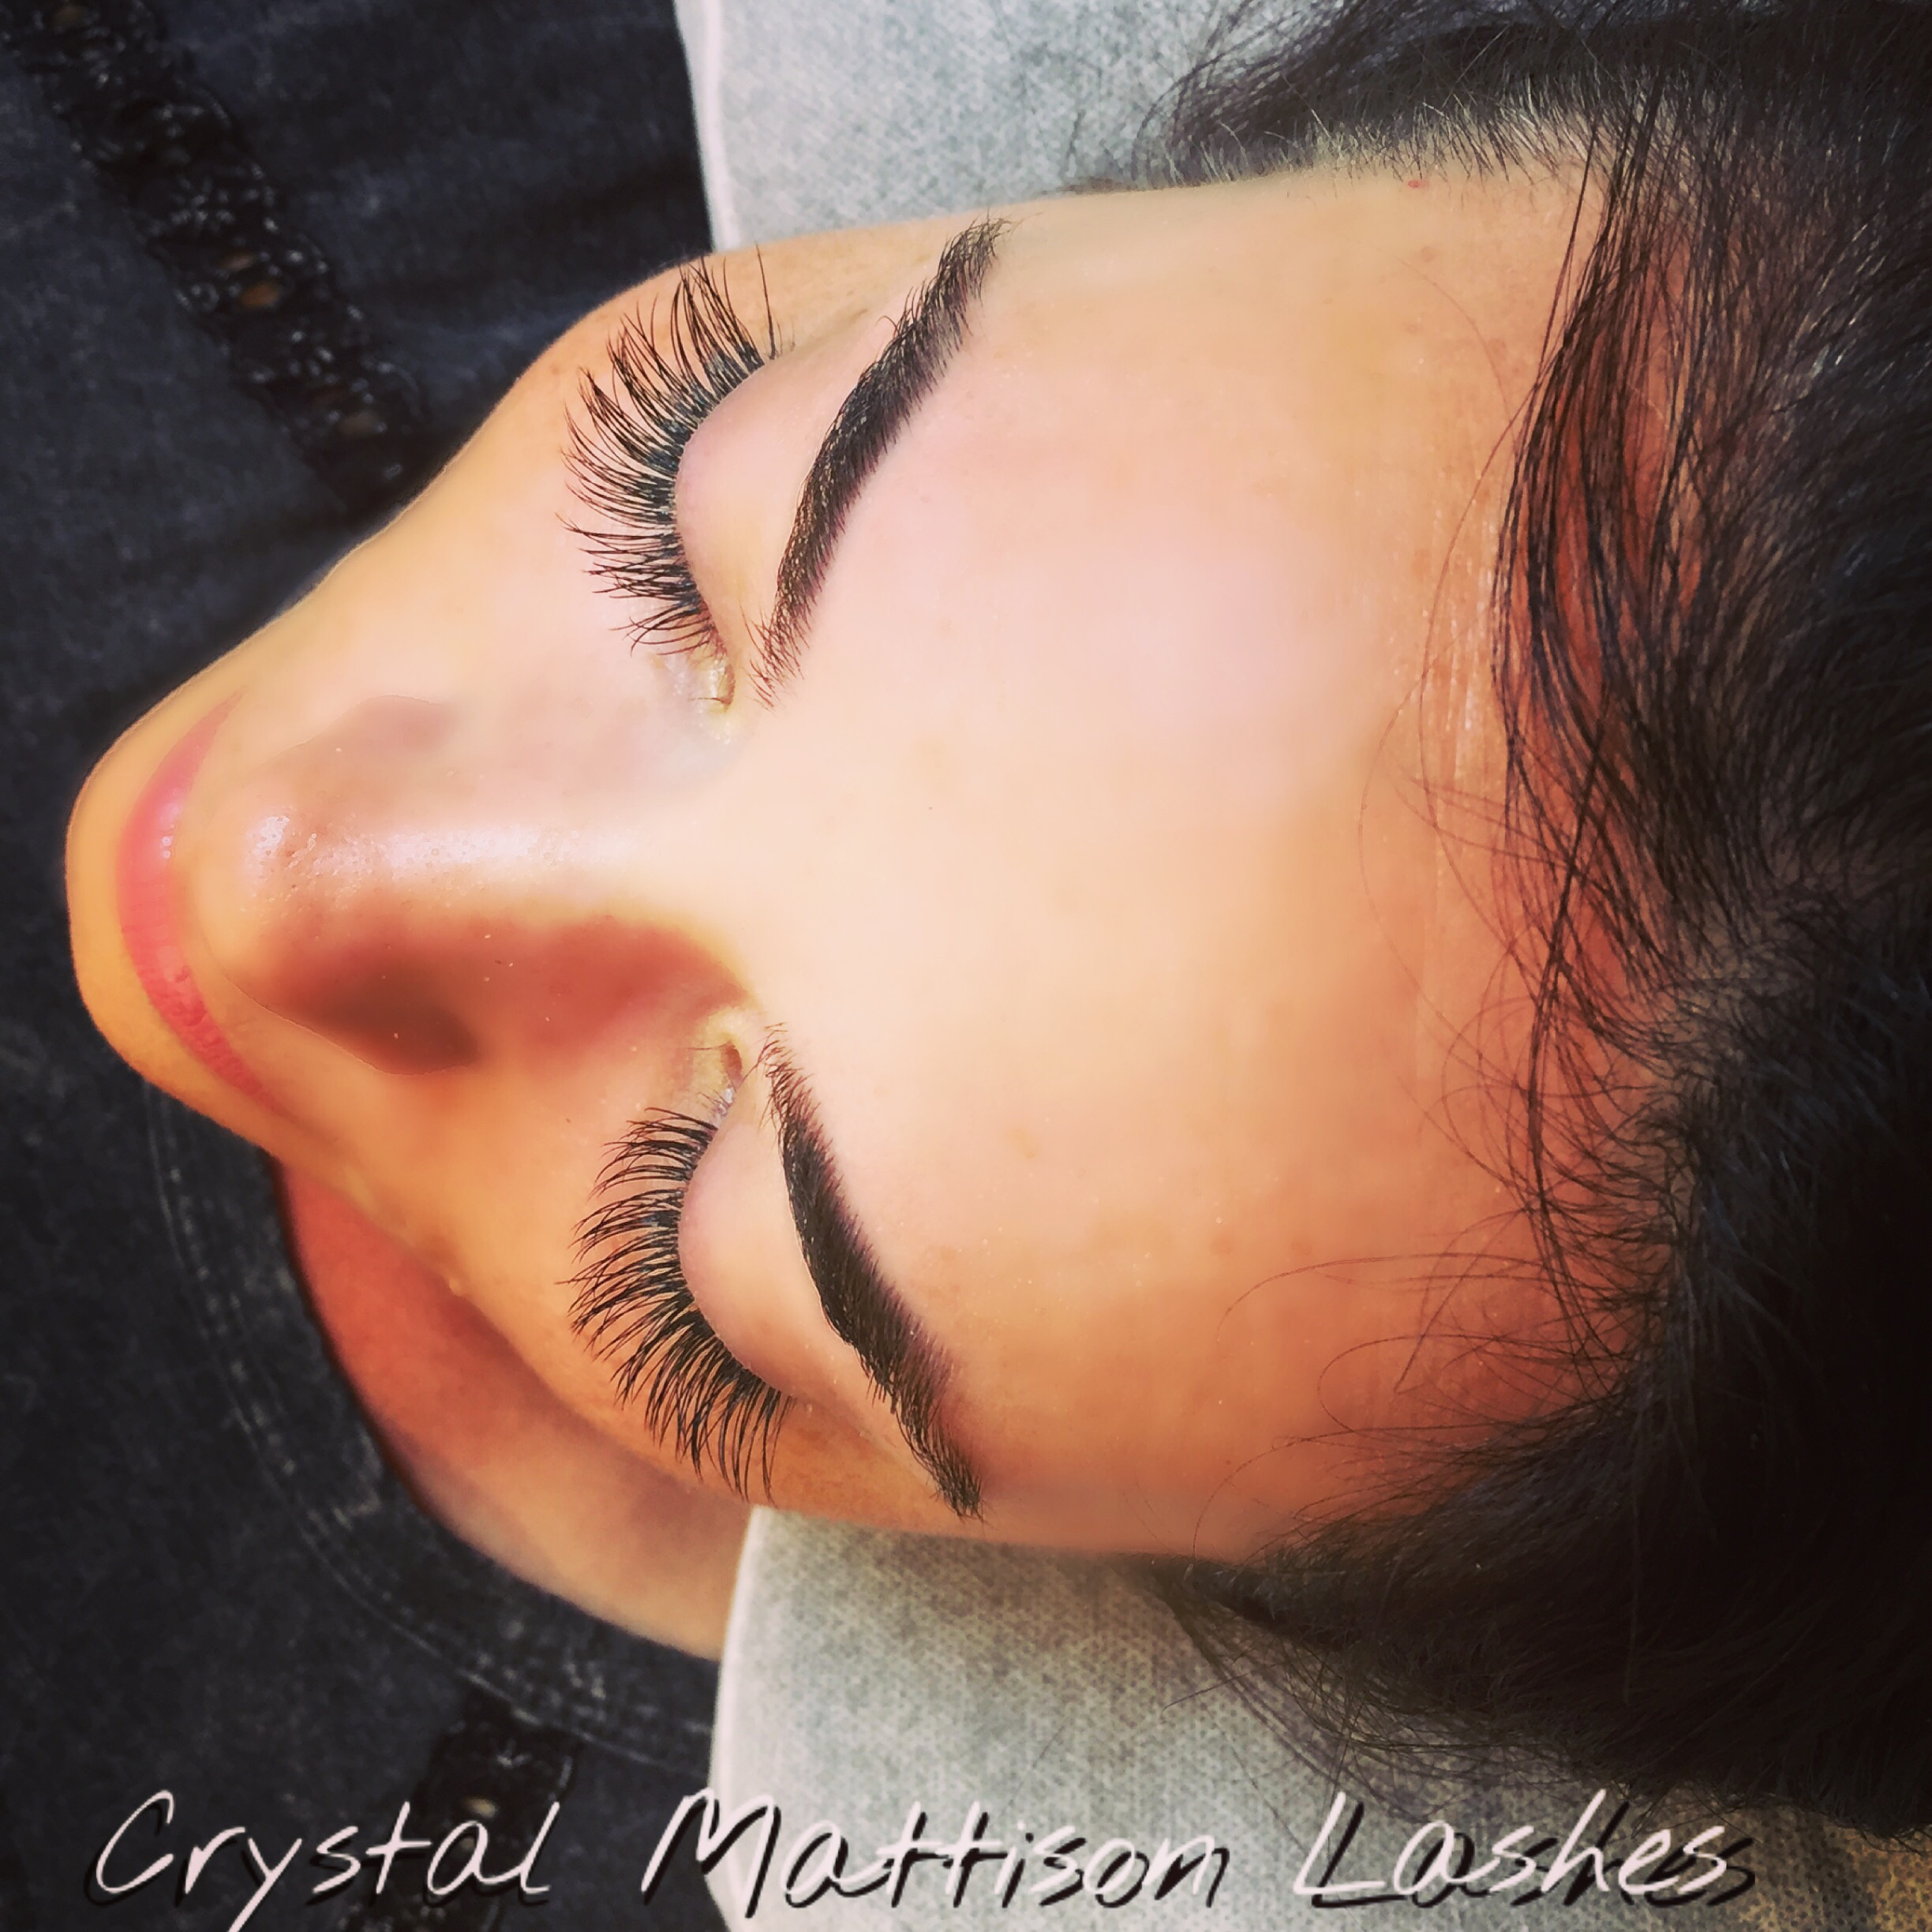 Classic Lashes 80 Per Eye